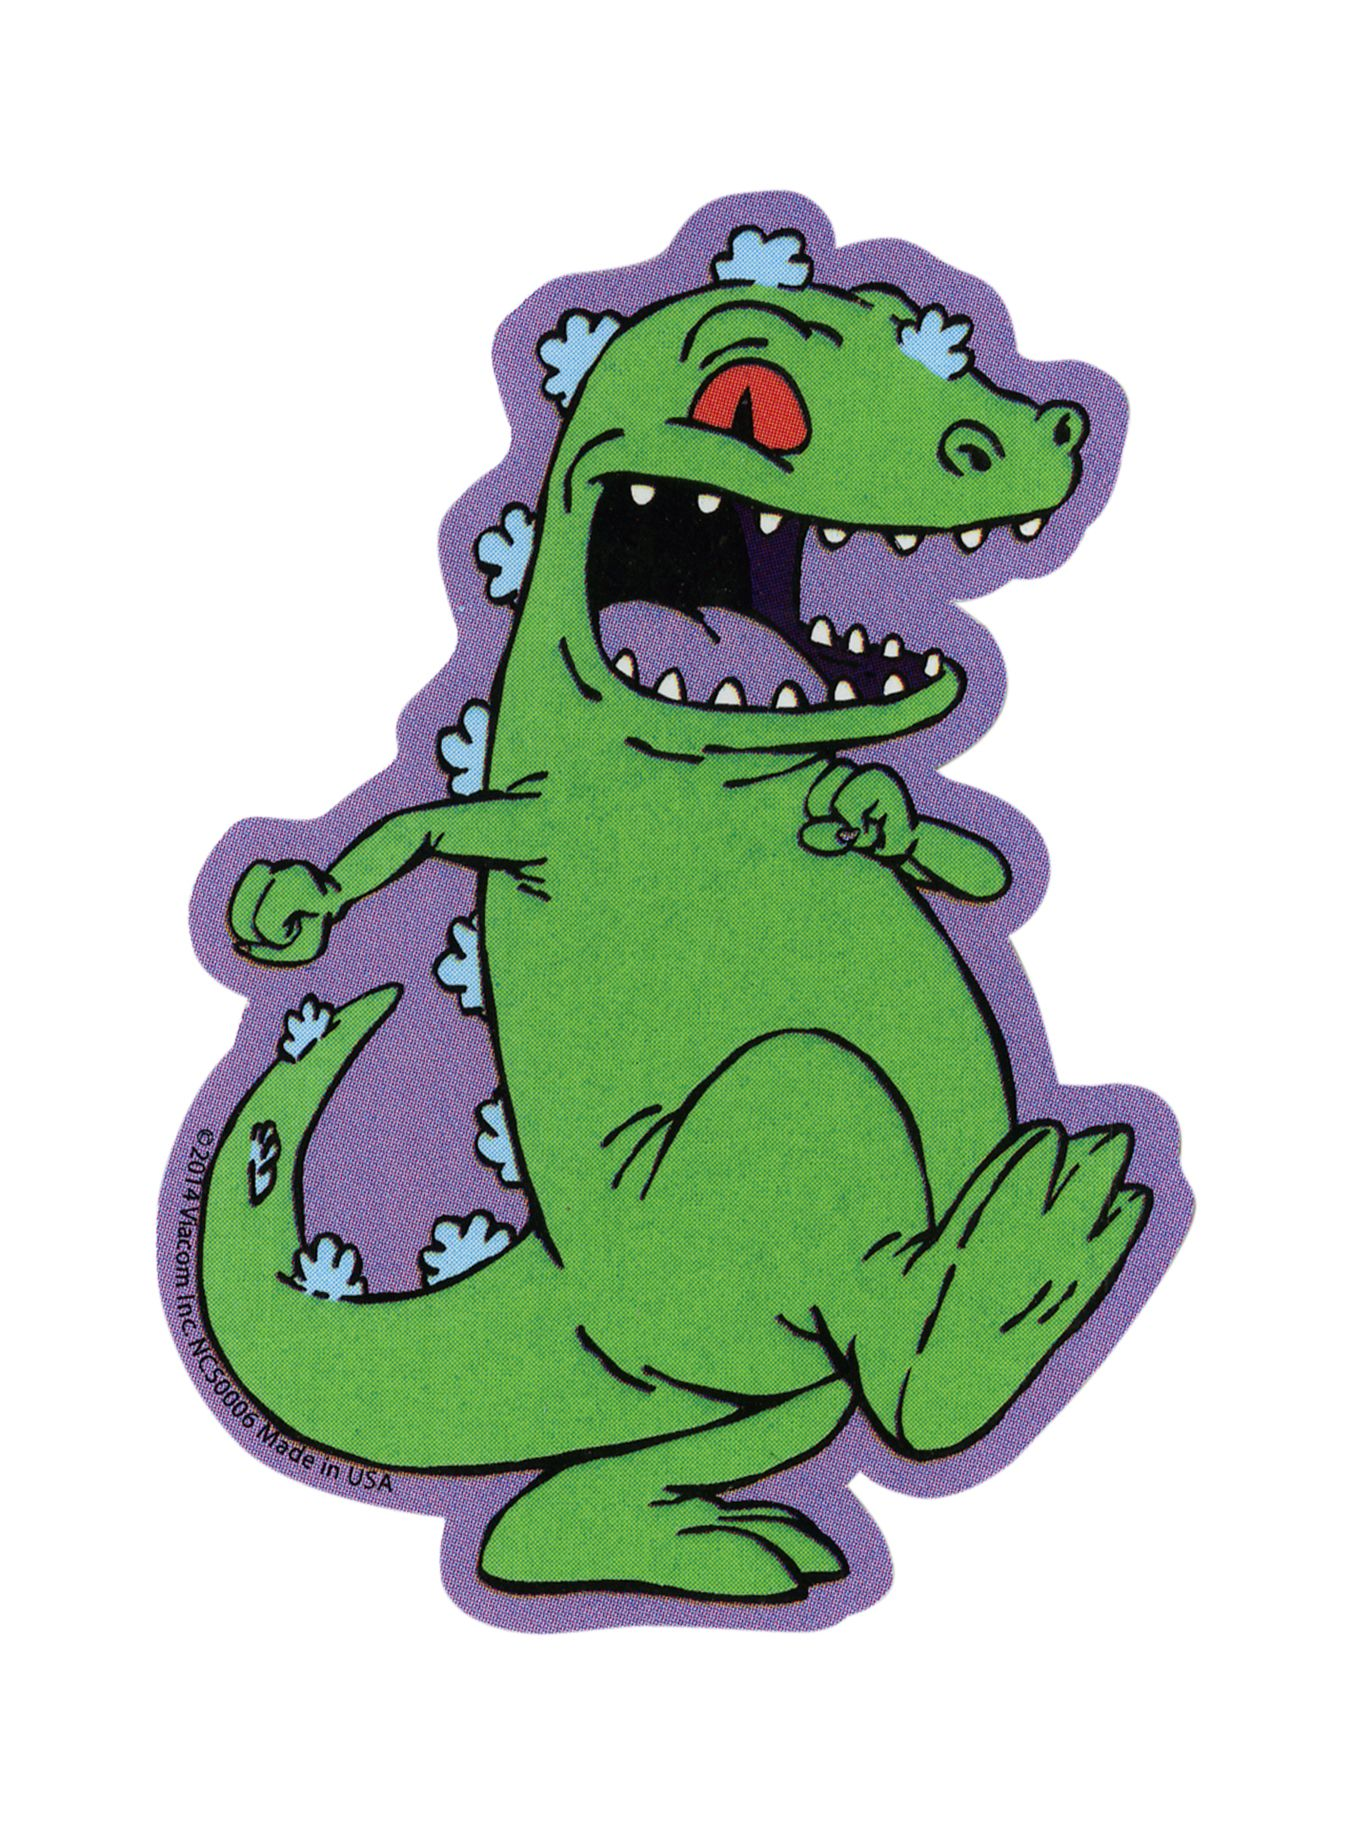 Reptar! I loved watching Rugrats as a kid. 90\'s Nick is amazing ...